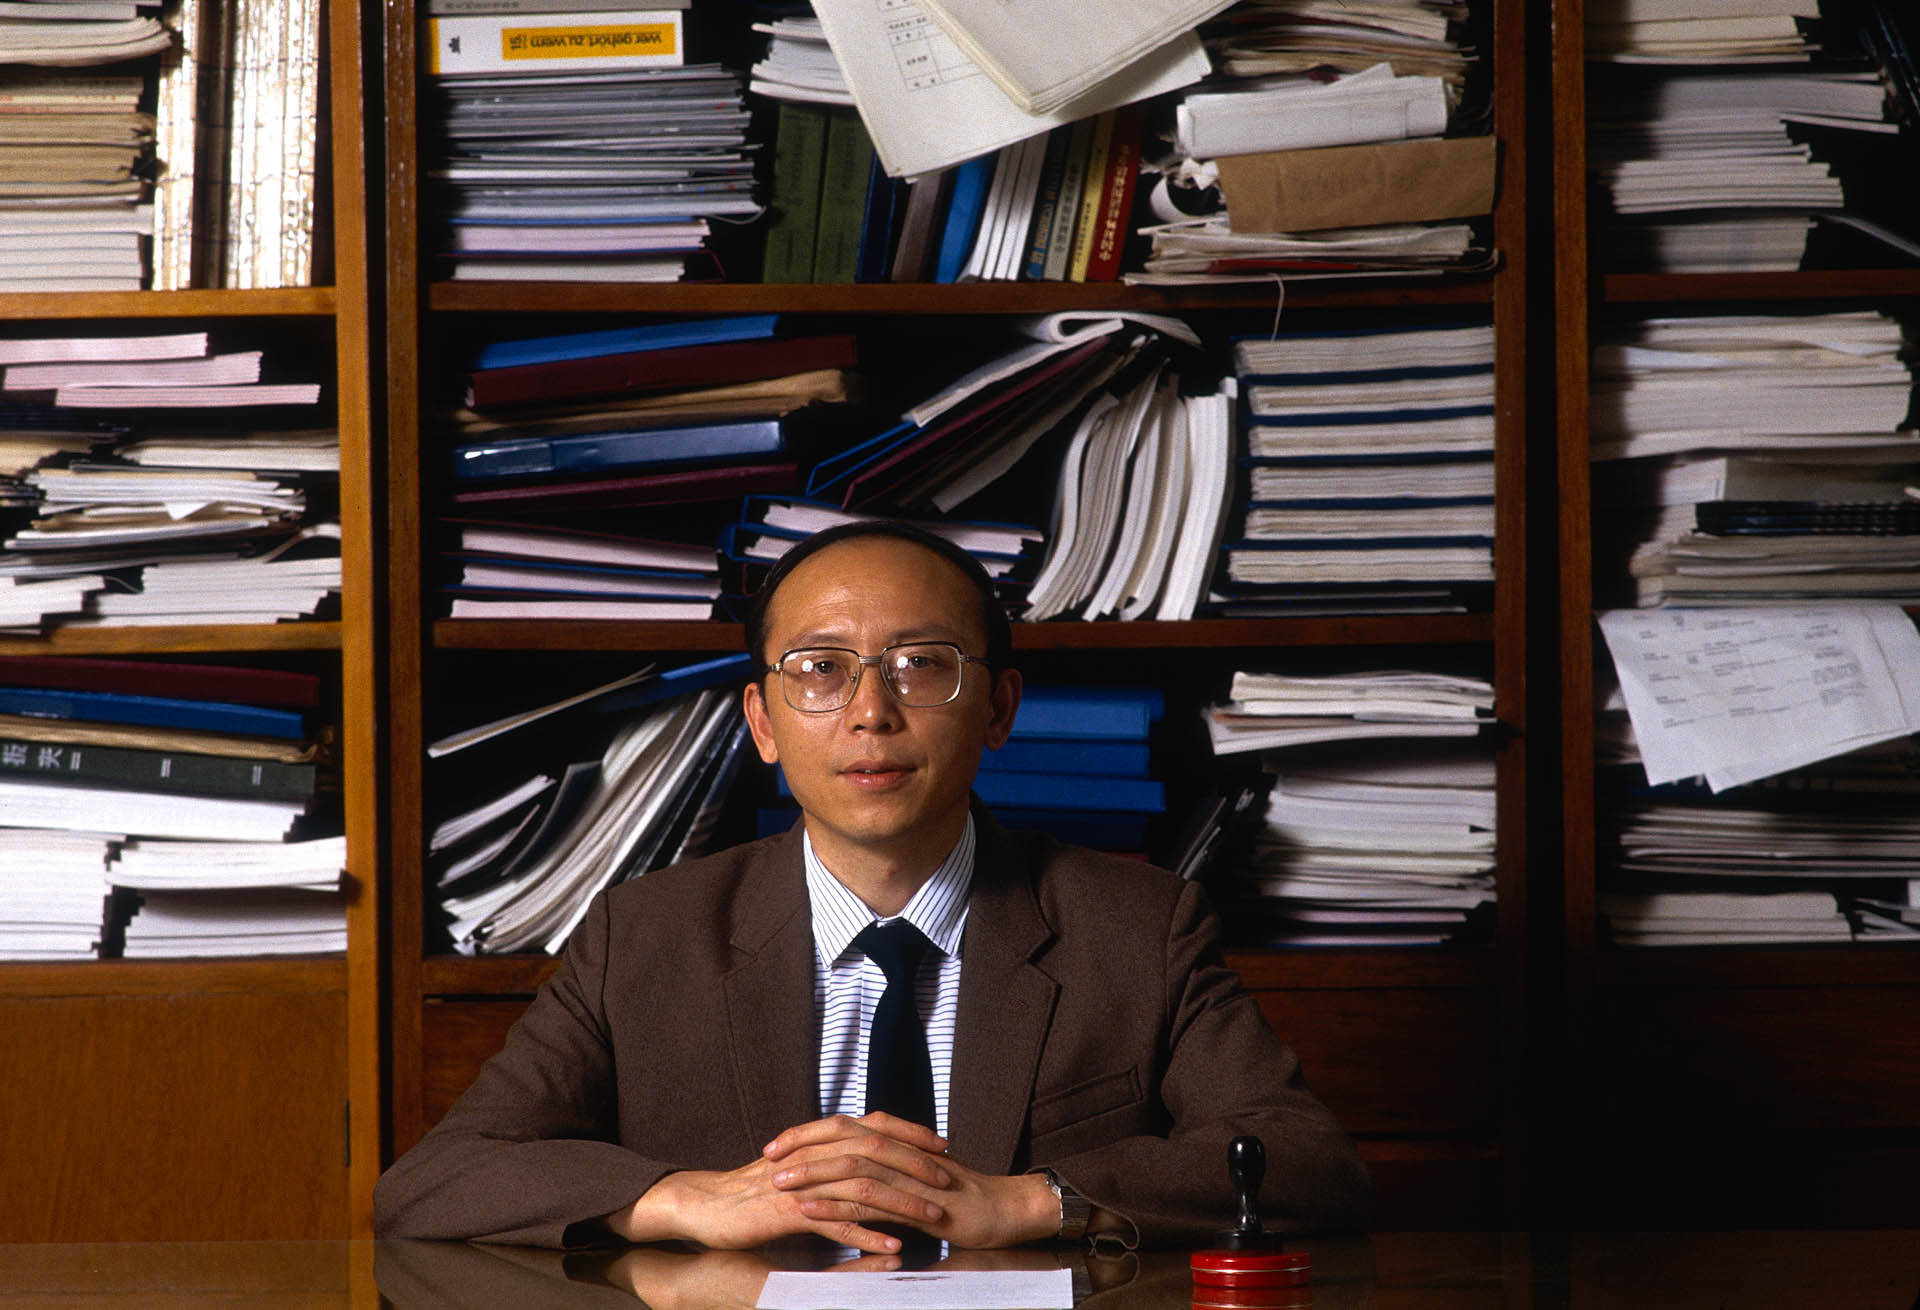 Shanghai, China - June 1988. Ye Long Fei, director of the Shanghai Foreign Investment Corporation. He is the only one taking the decisions regarding the city economic plan.